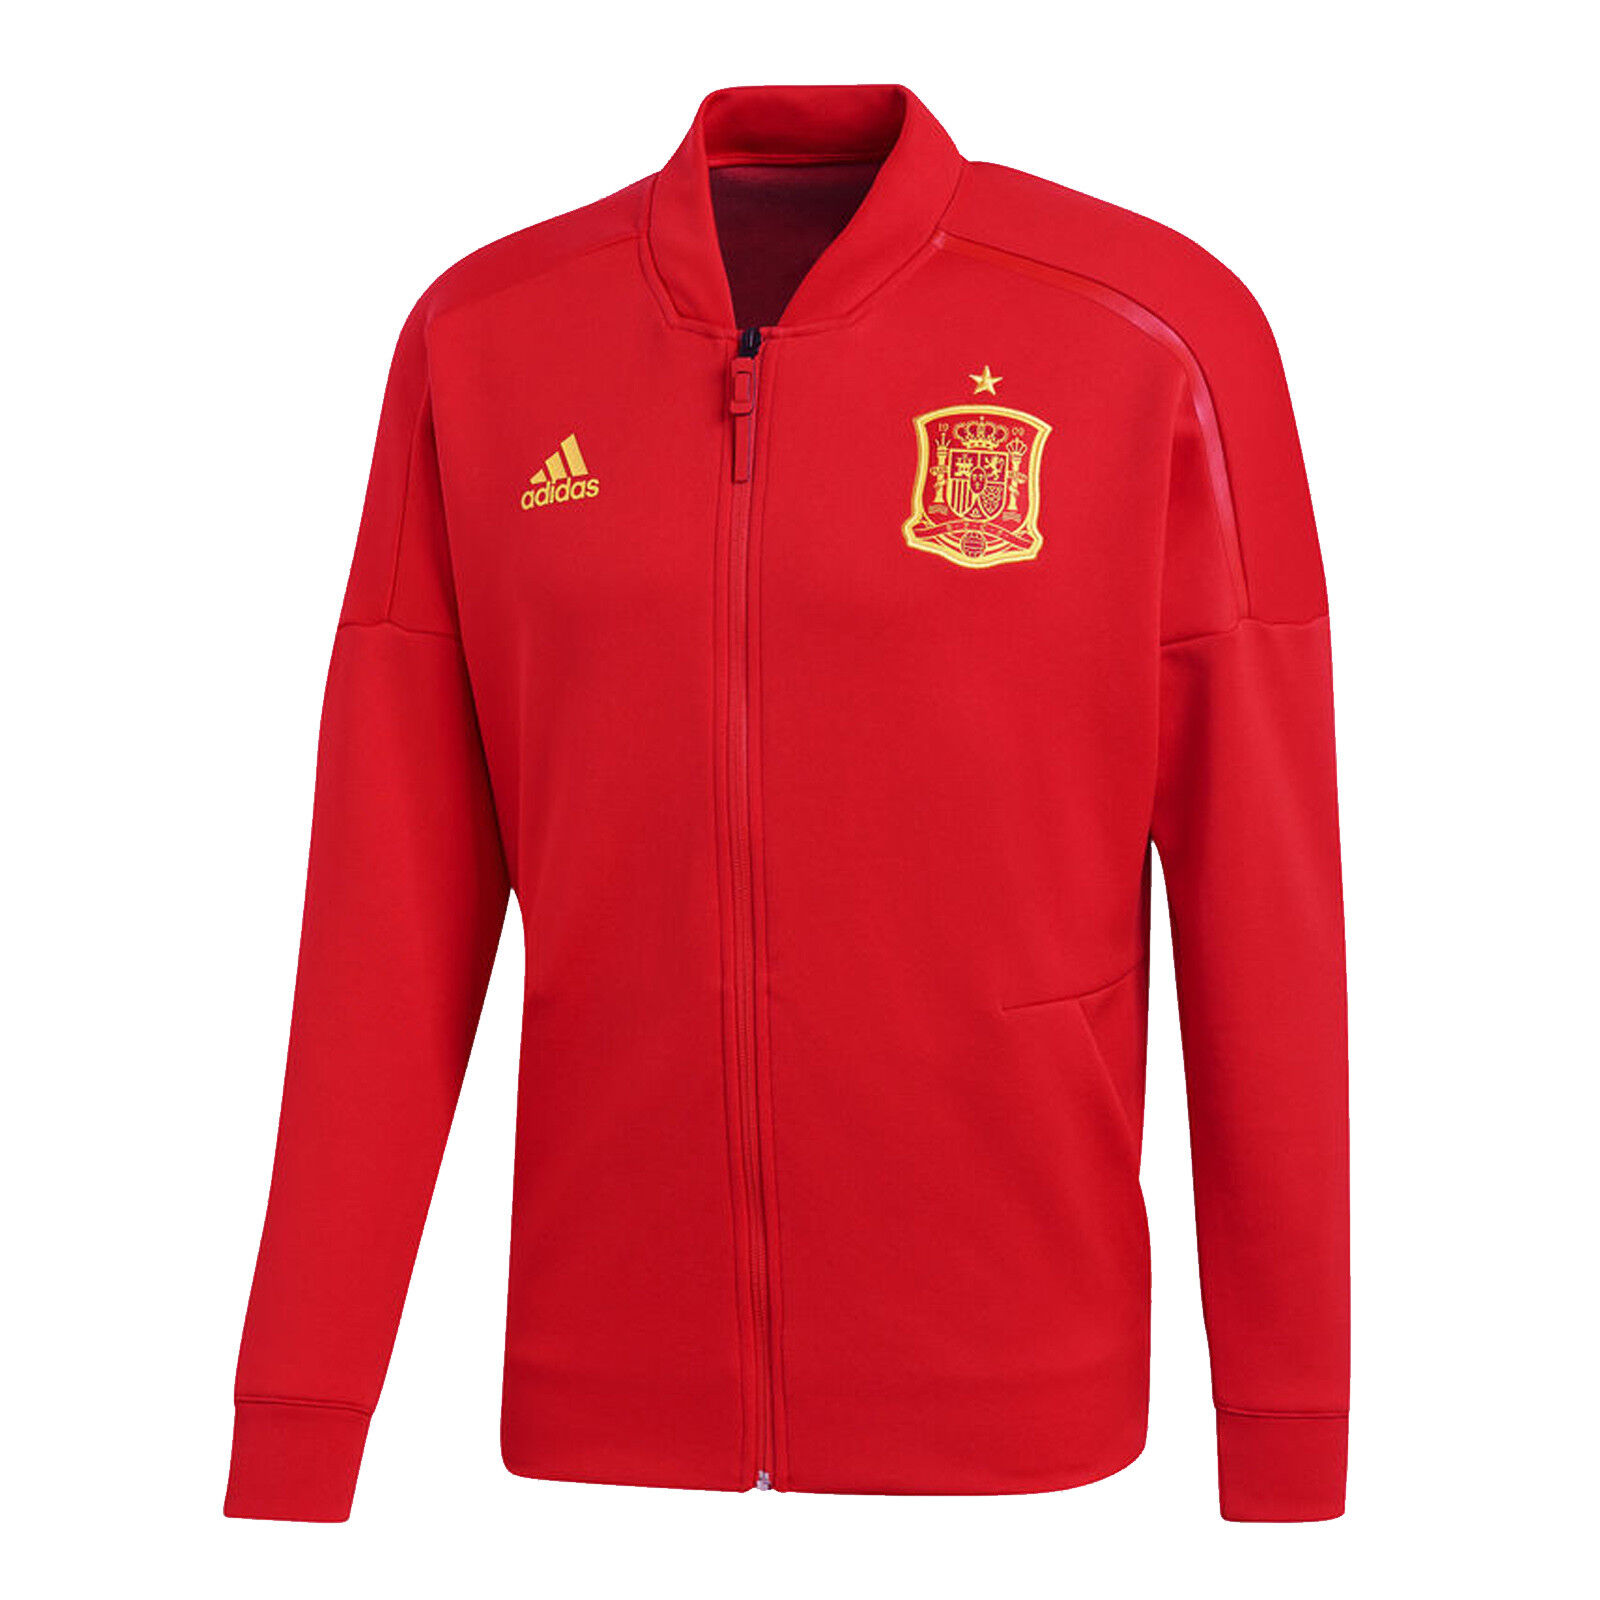 Adidas Spain ZNE Jacket Mens Football Track Top New   eBay 2aeba453e6